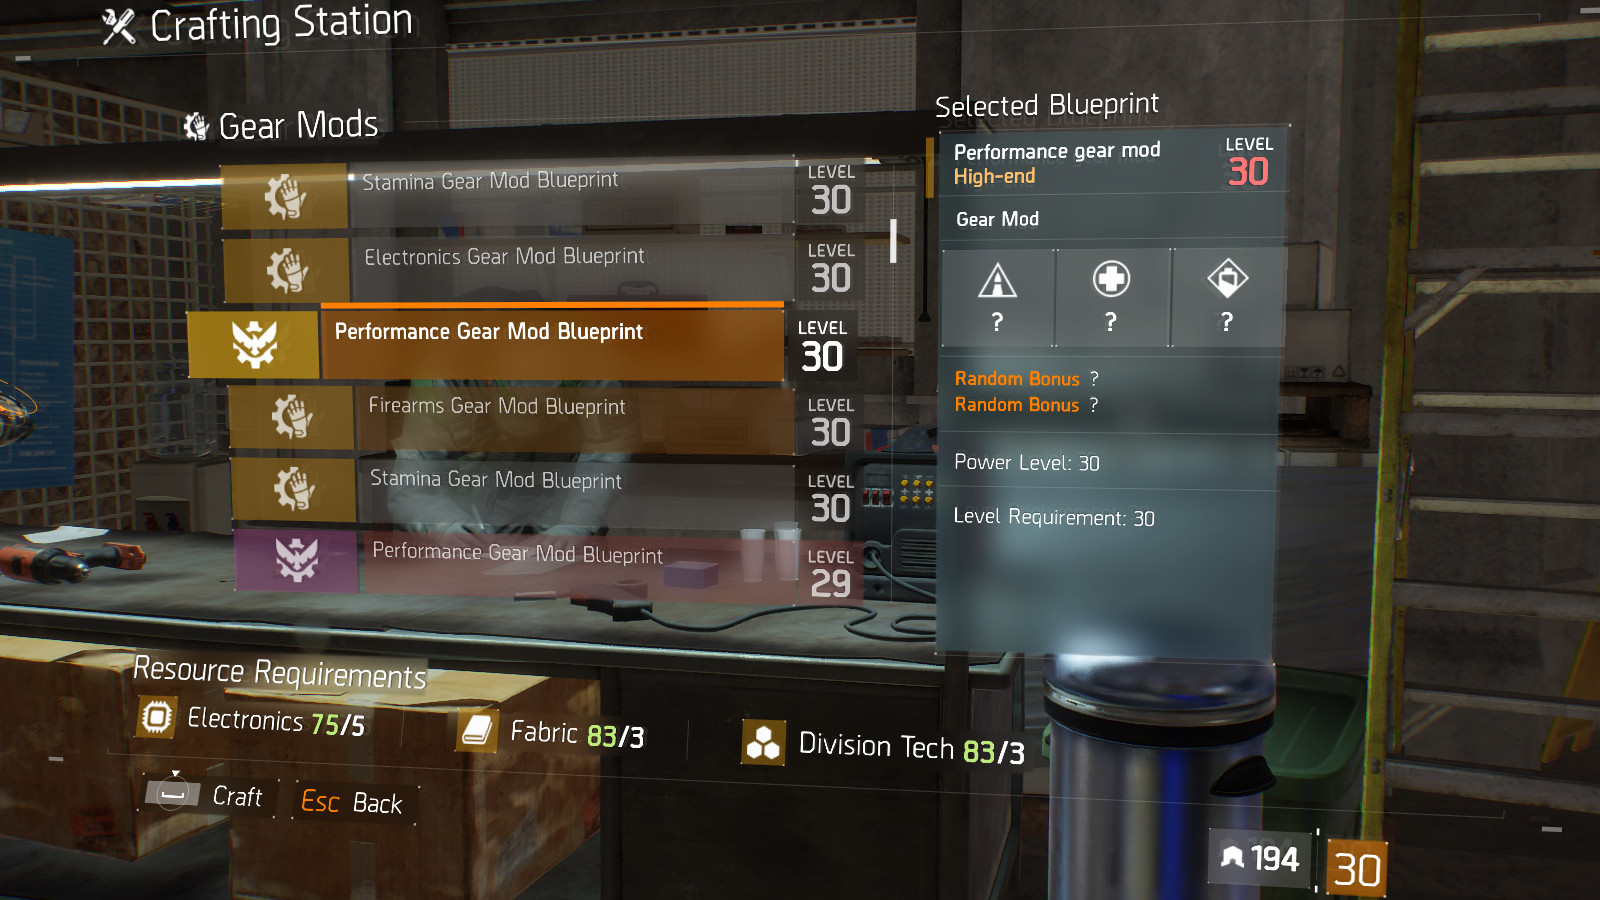 Guode To Crafting Mods Blueprints In The Division In